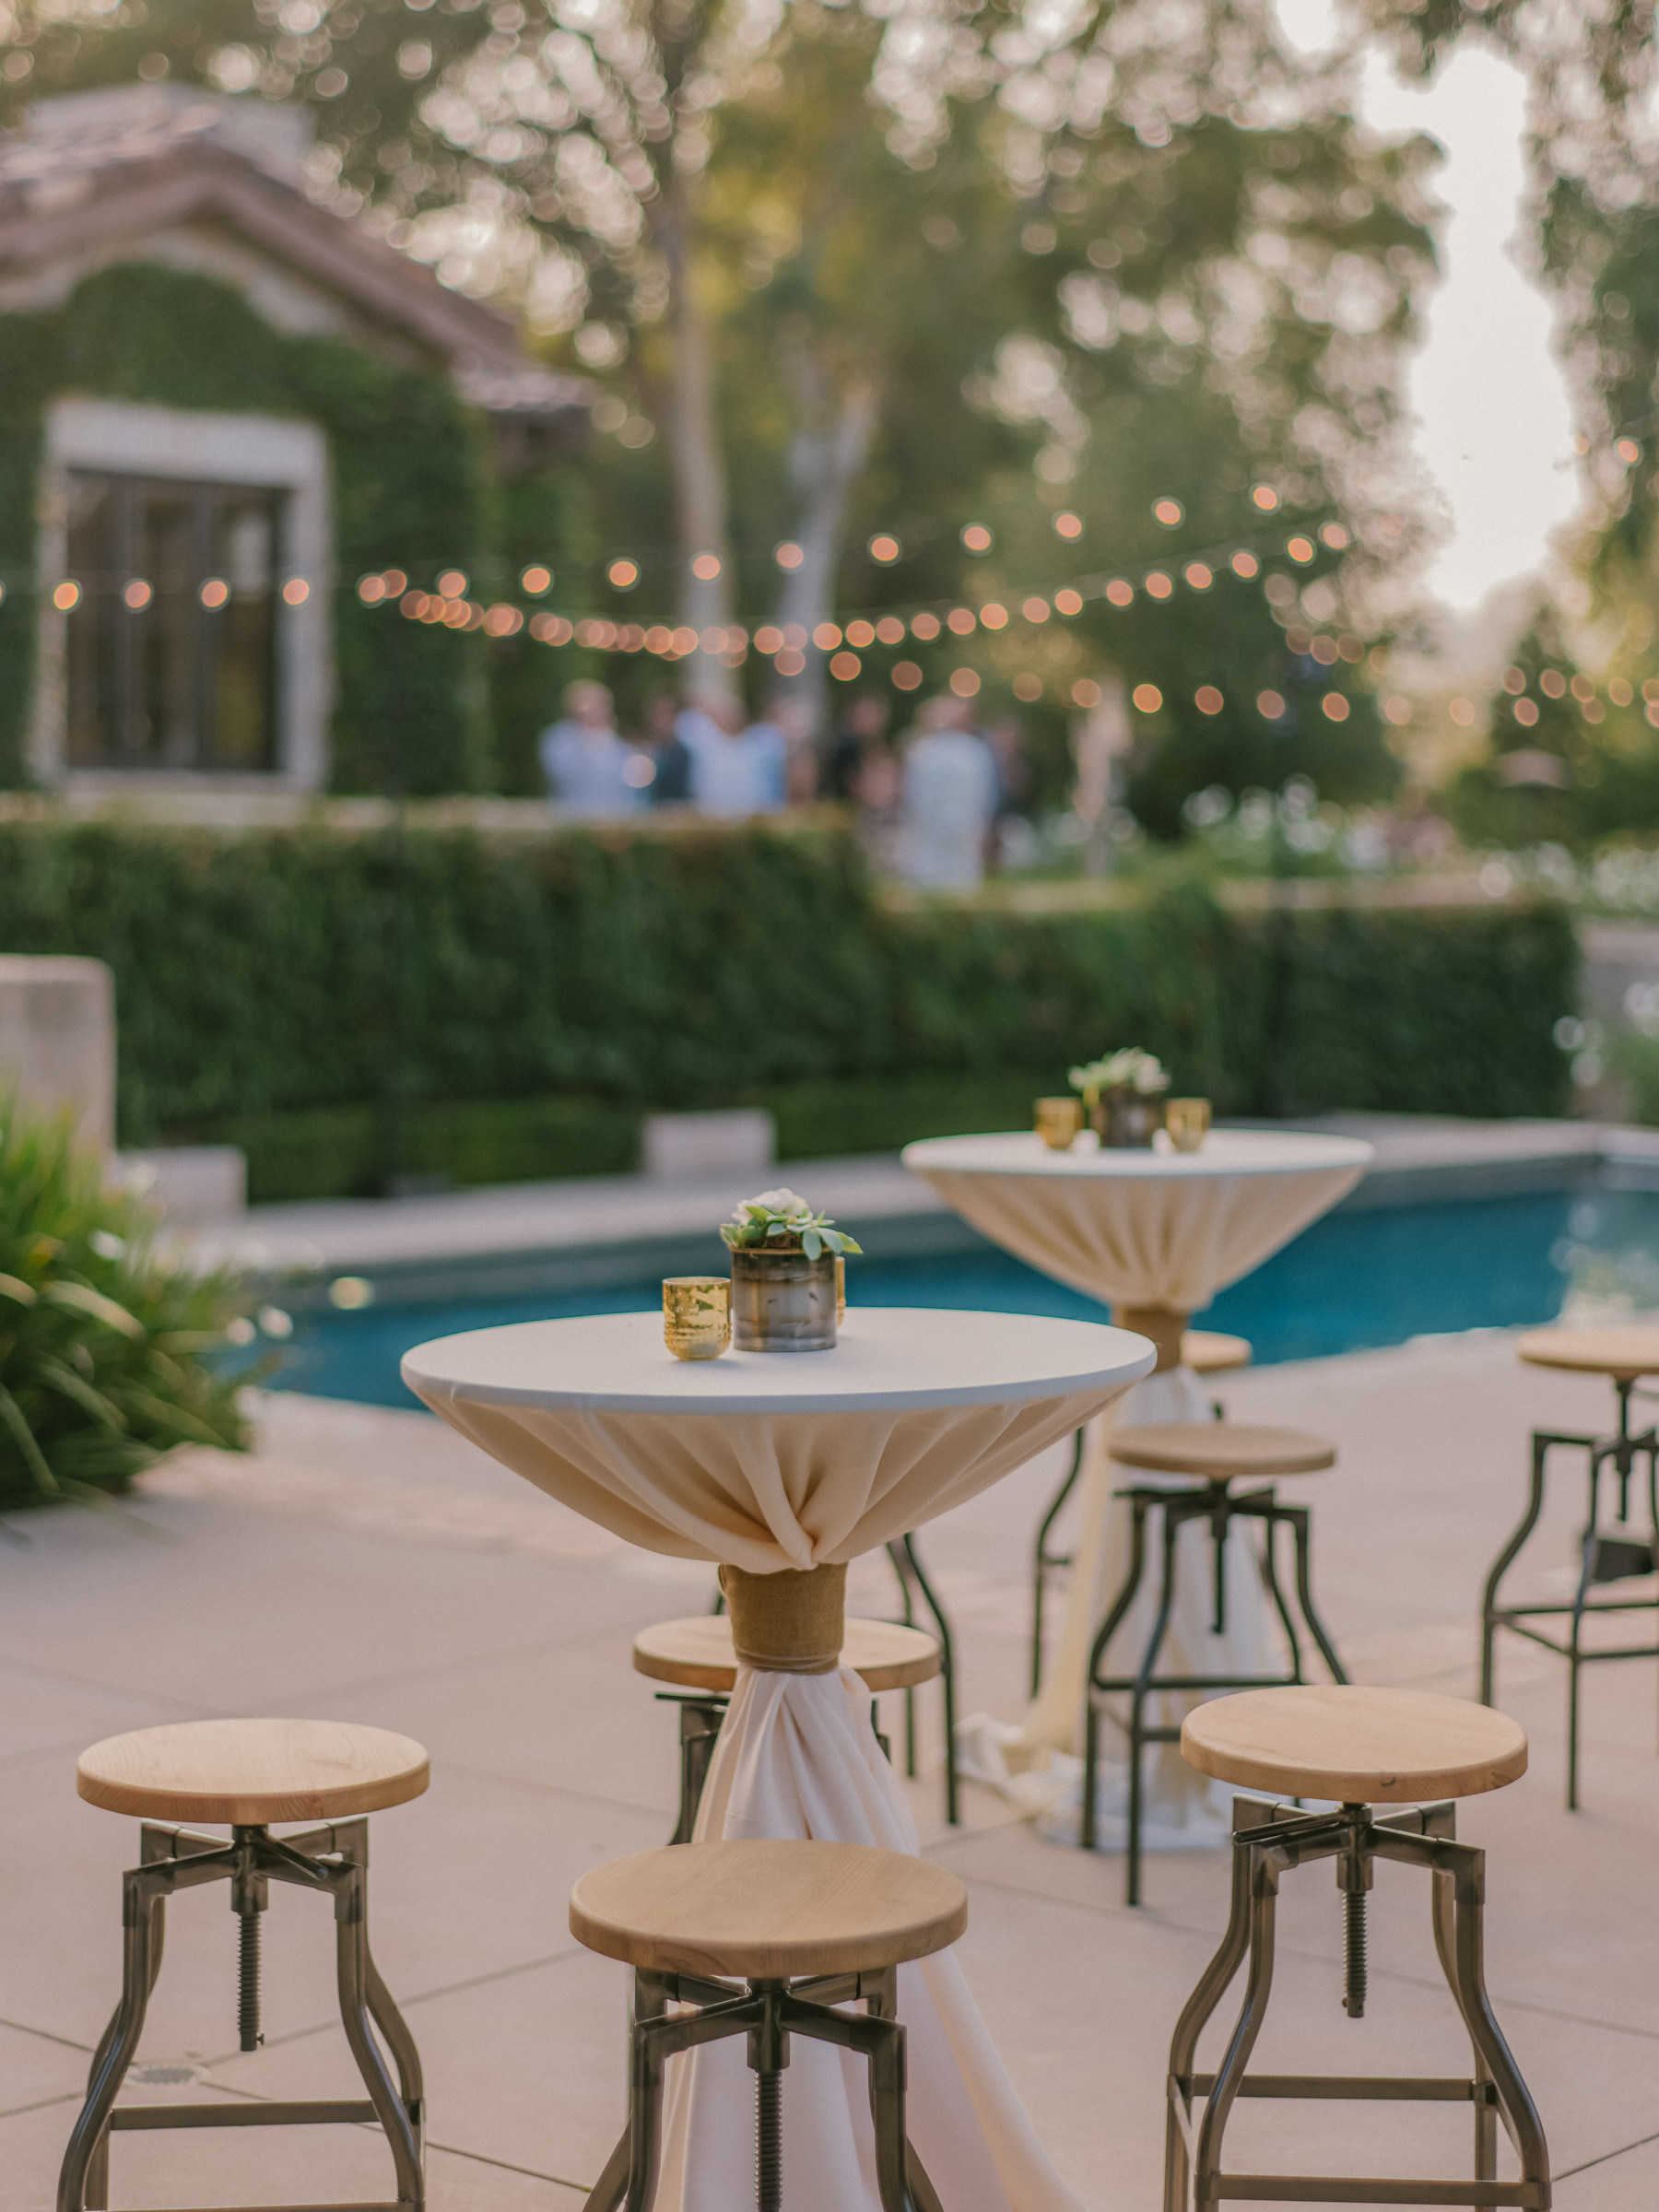 Poolside reception decor with wrapped tables and strung slights - photo by Amy and Stuart Photography